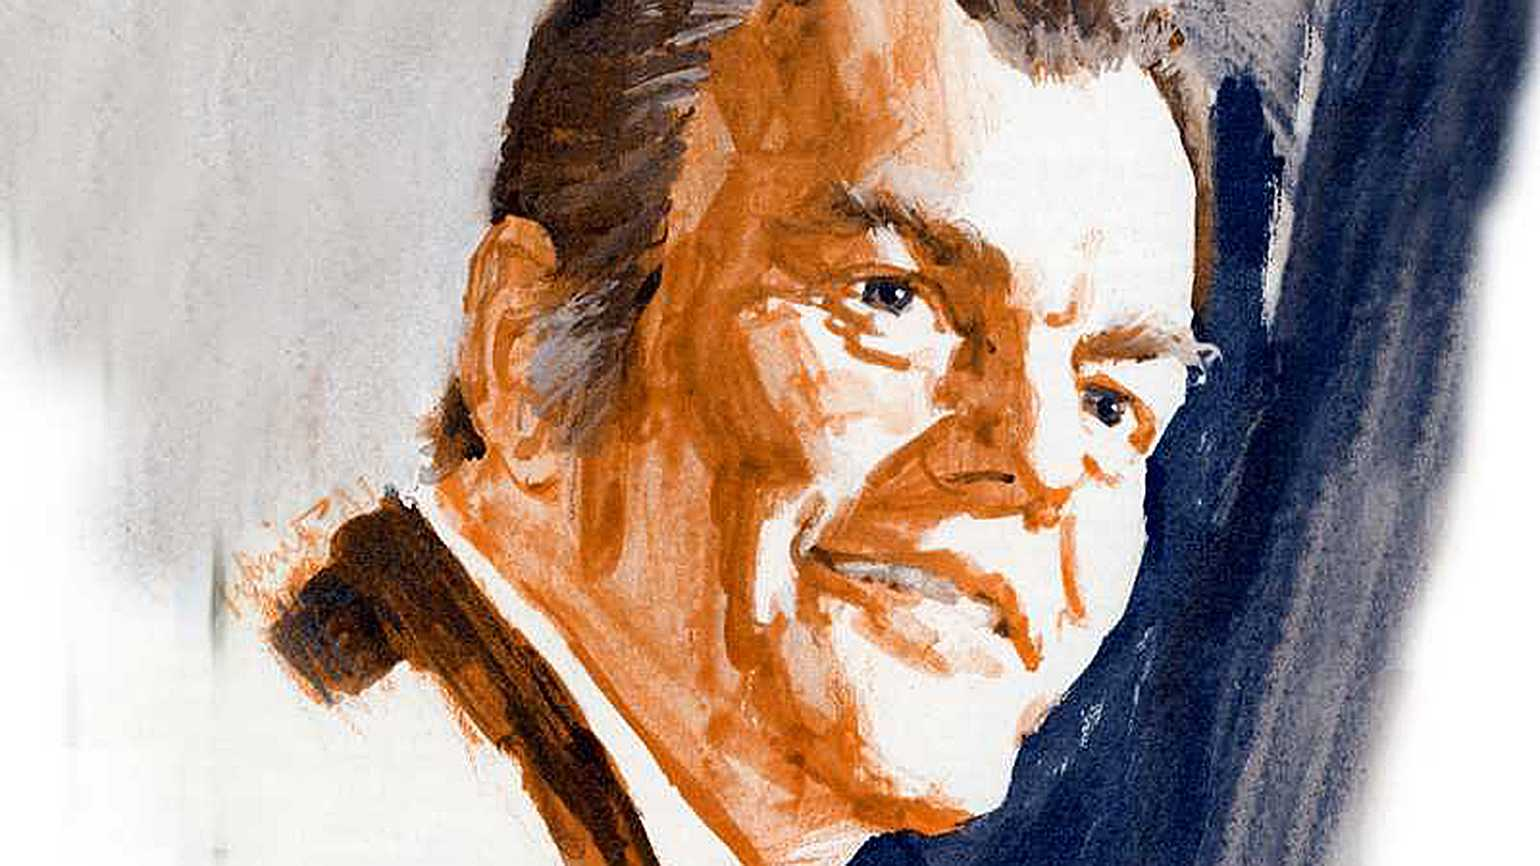 An artist's portrait of Paul Harvey